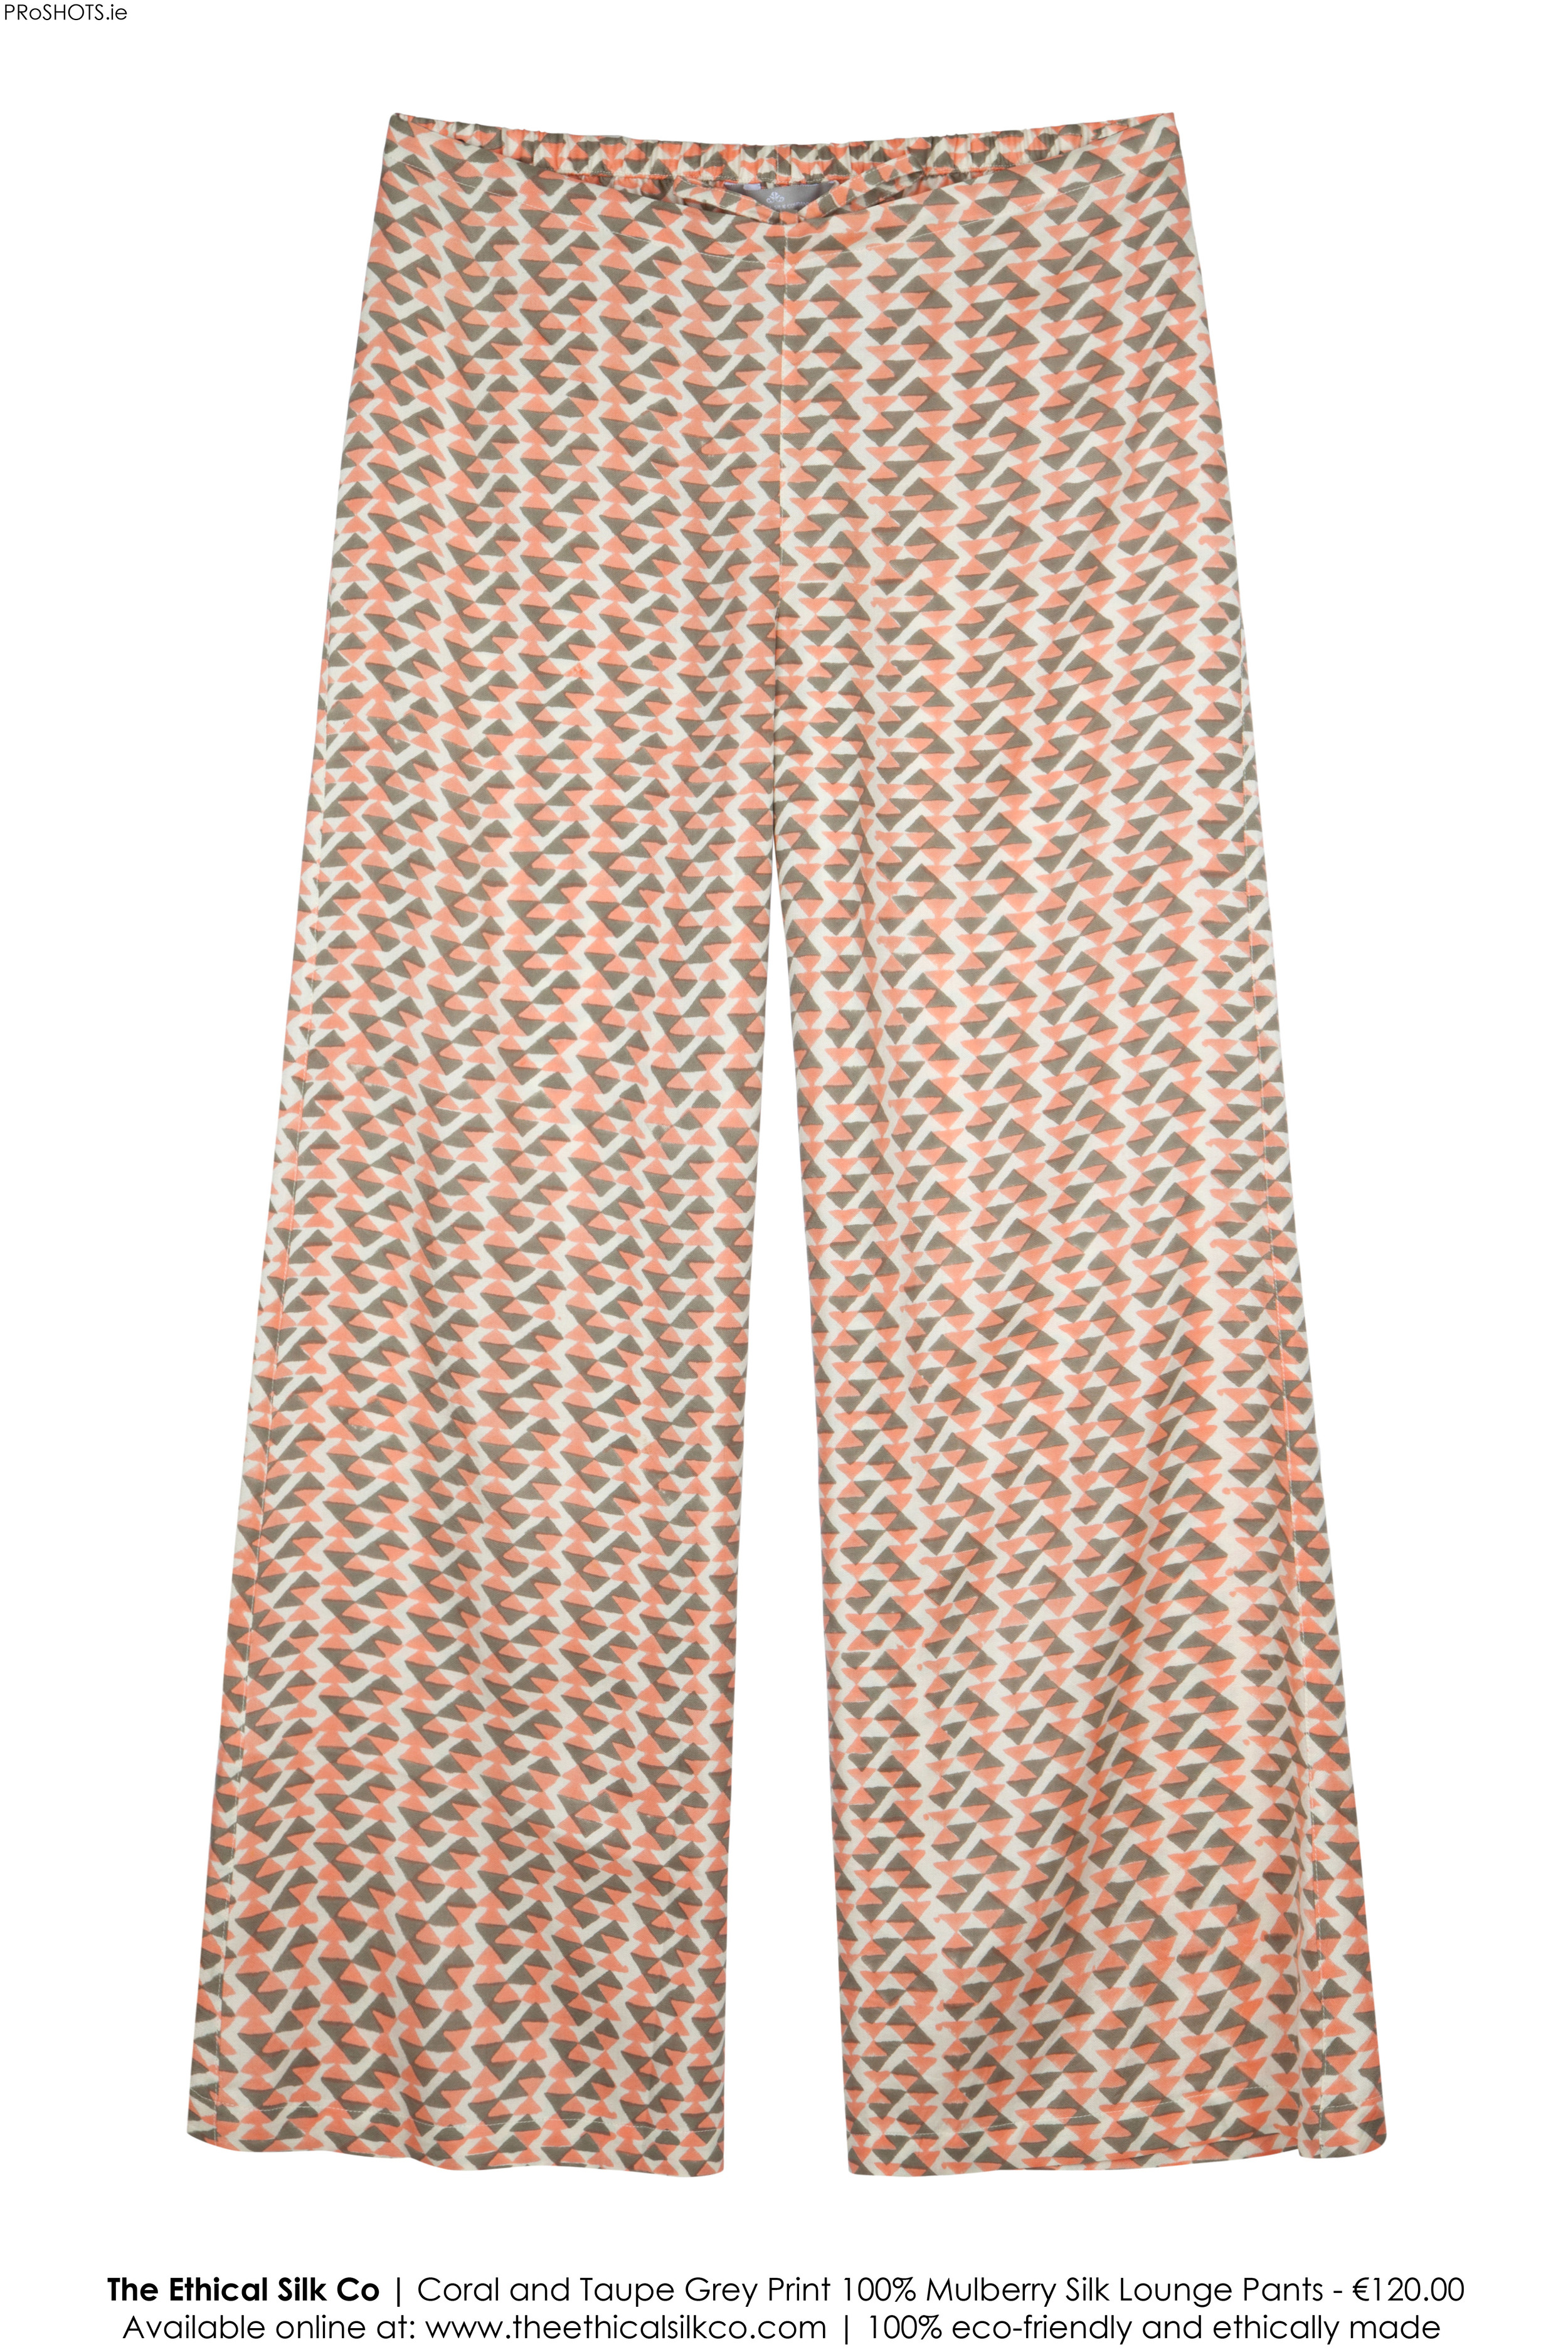 027e28da92 Mulberry Silk Lounge Pants - Coral/Grey — The Ethical Silk Company